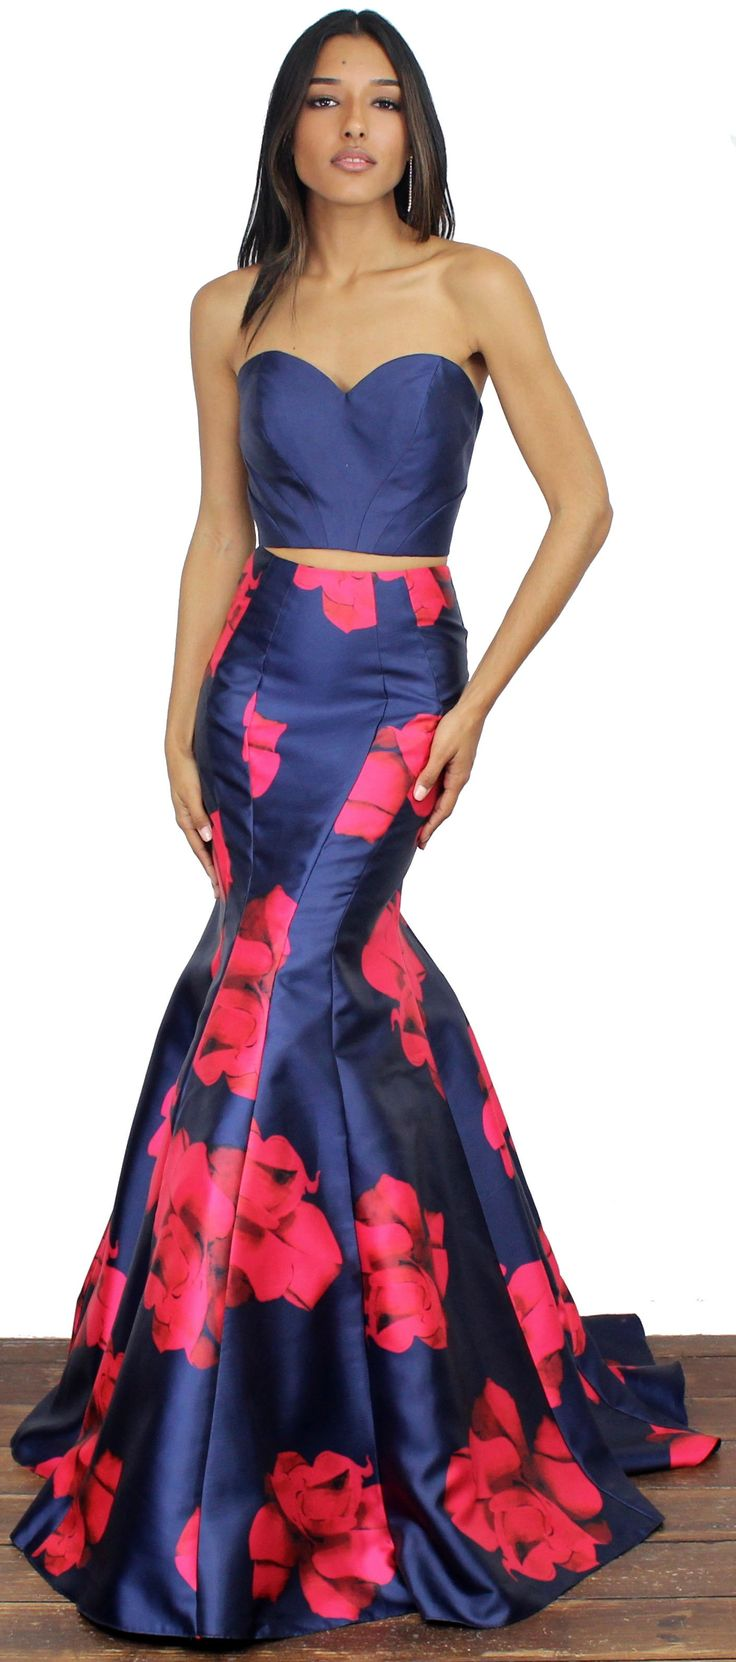 Bloom with a navy twopiece set gown strapless dress